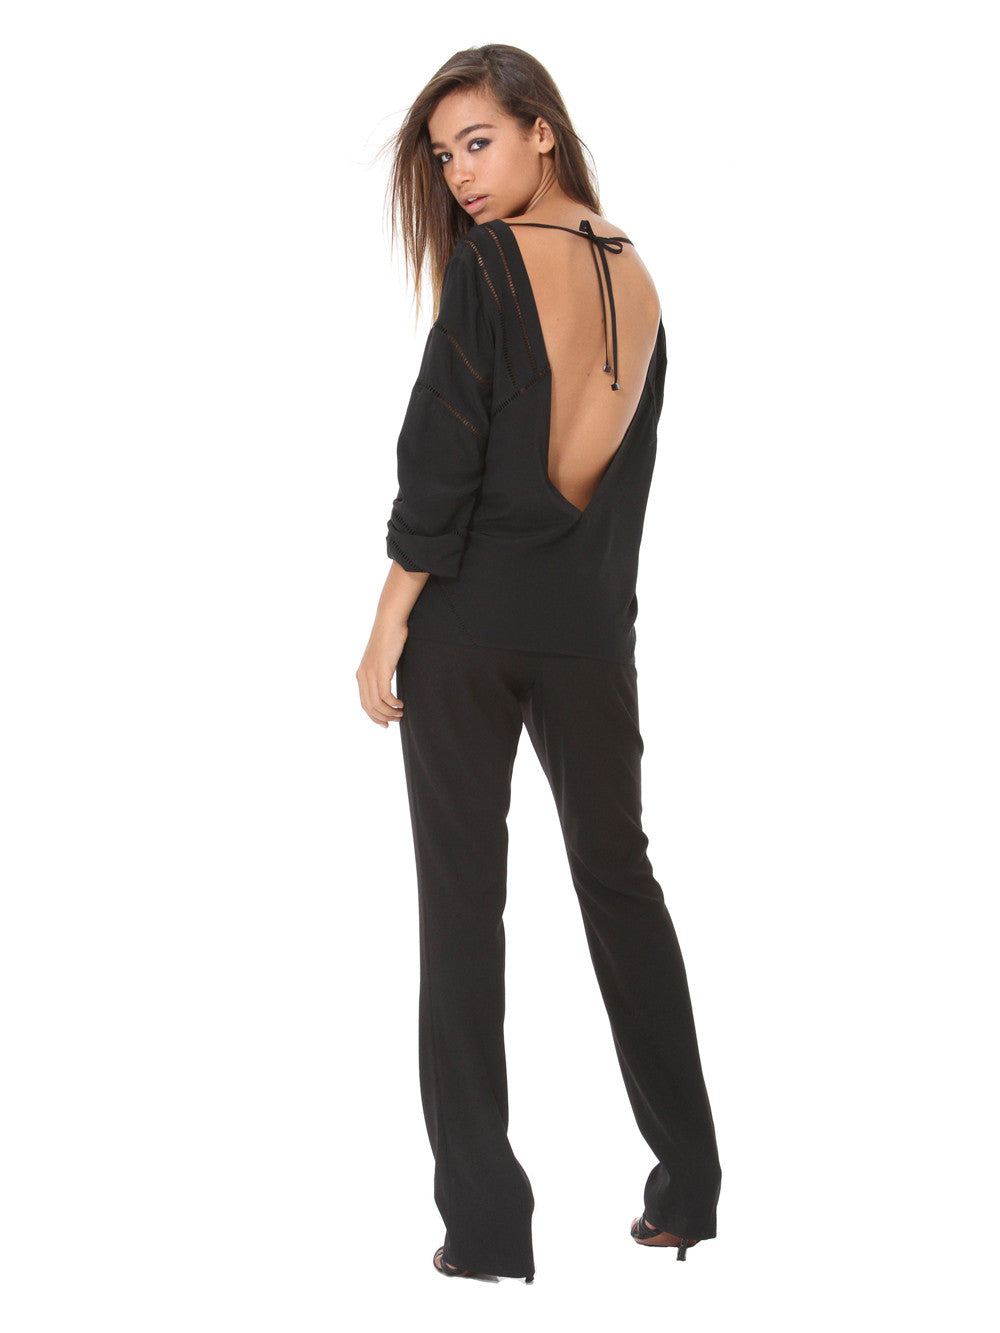 BORN TO RUN PANT - Little Joe Woman by Gail Elliott E-Boutique  - 4